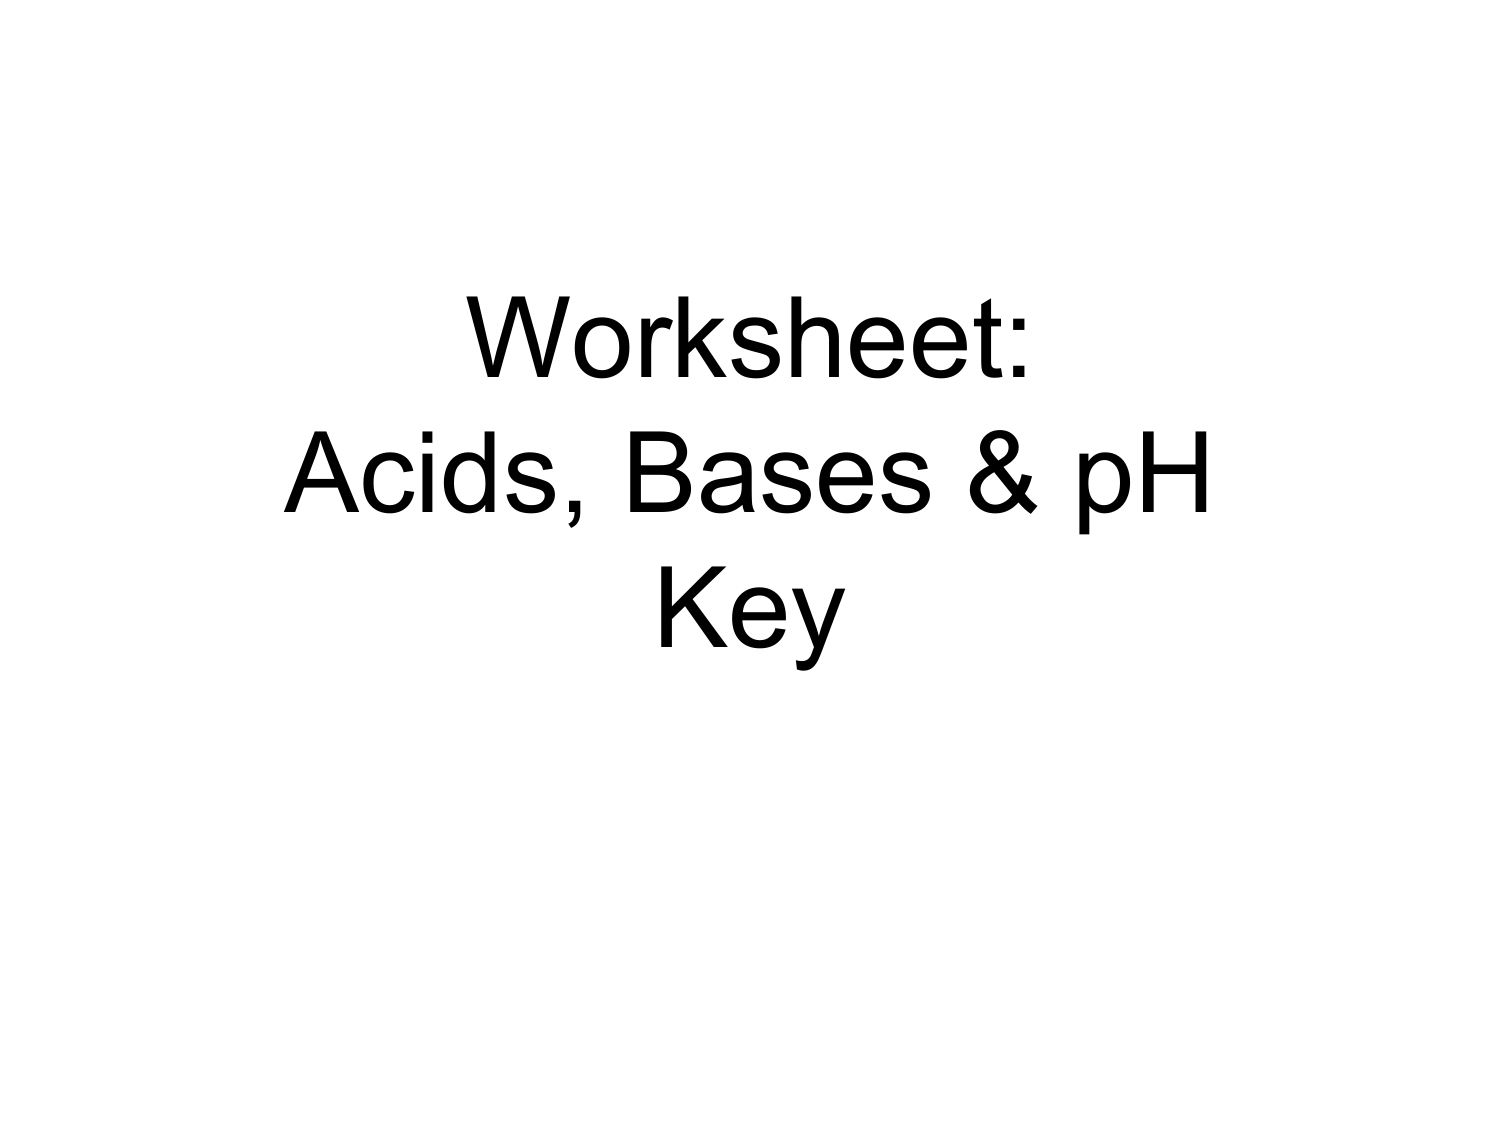 Worksheet Acids Bases Amp Ph Key